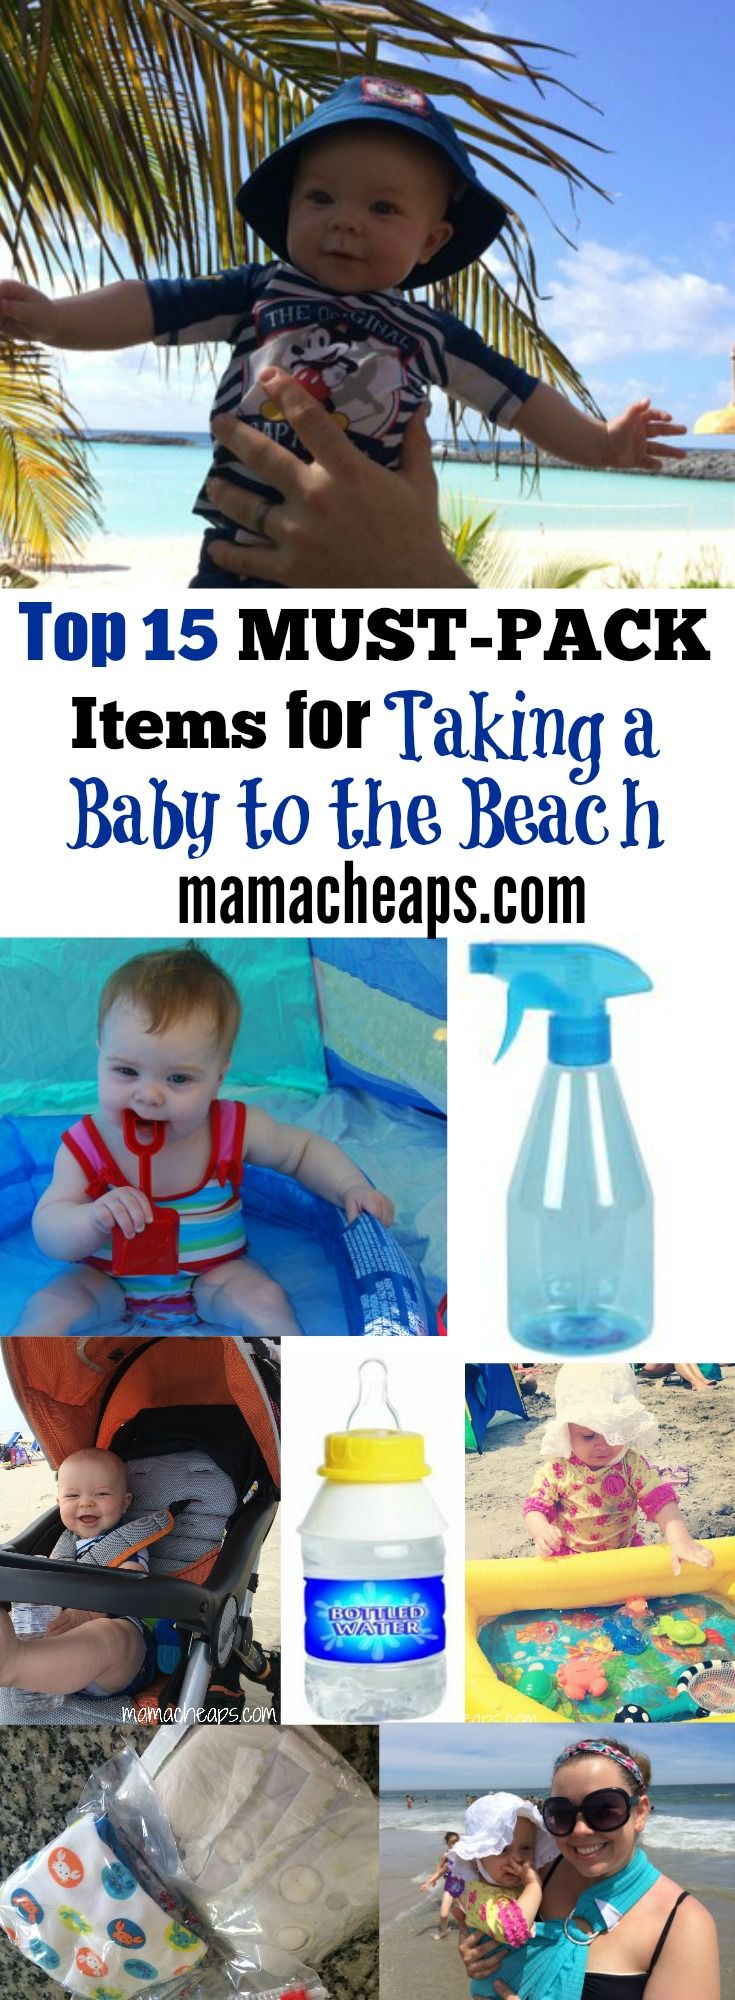 15 MUST-PACK Best Baby Beach Gear Items